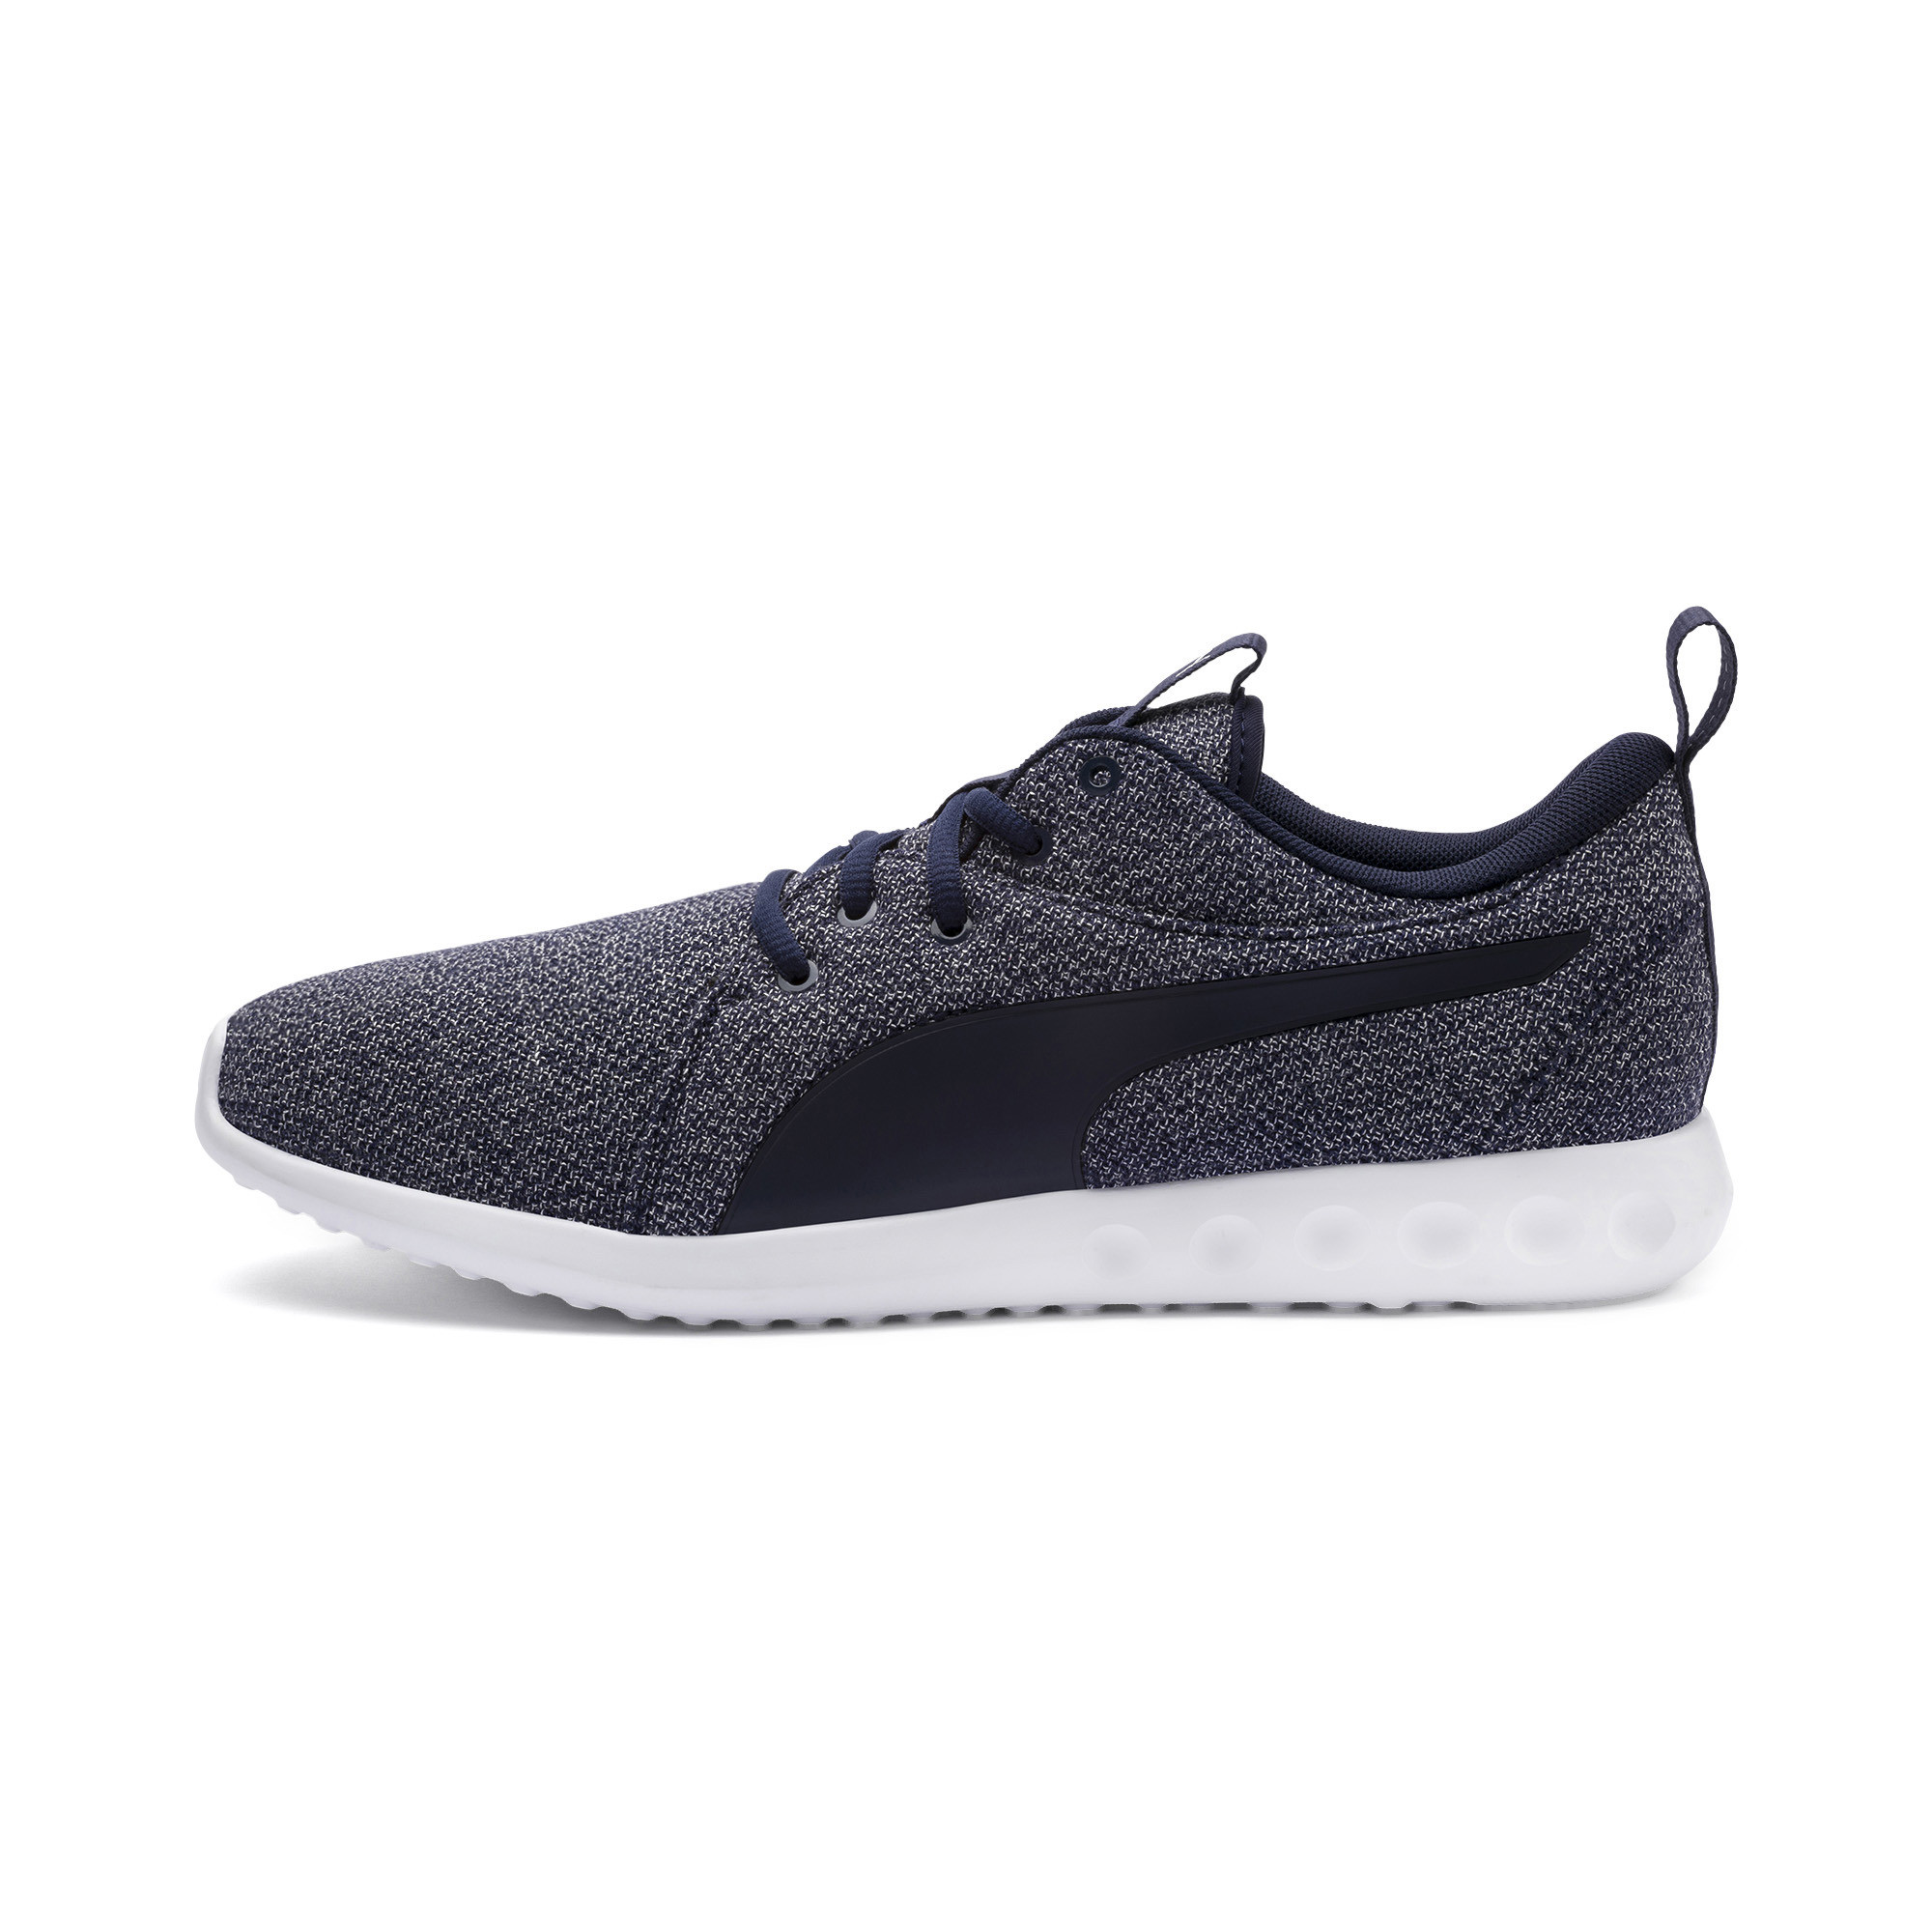 PUMA-Men-039-s-Carson-2-Knit-Training-Shoes thumbnail 23